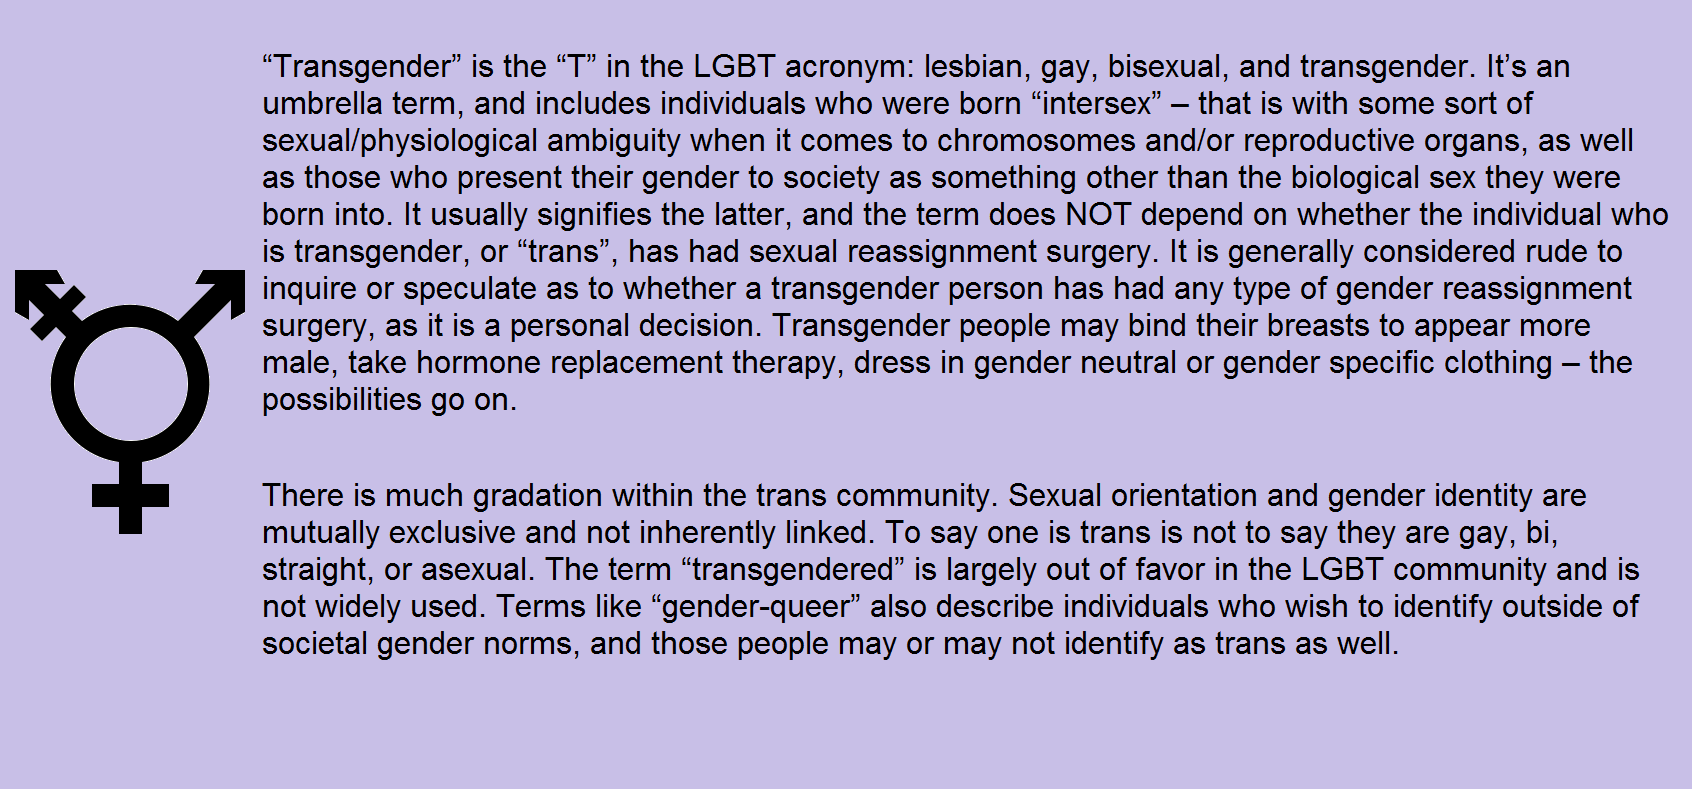 from Levi help for newly transgendered